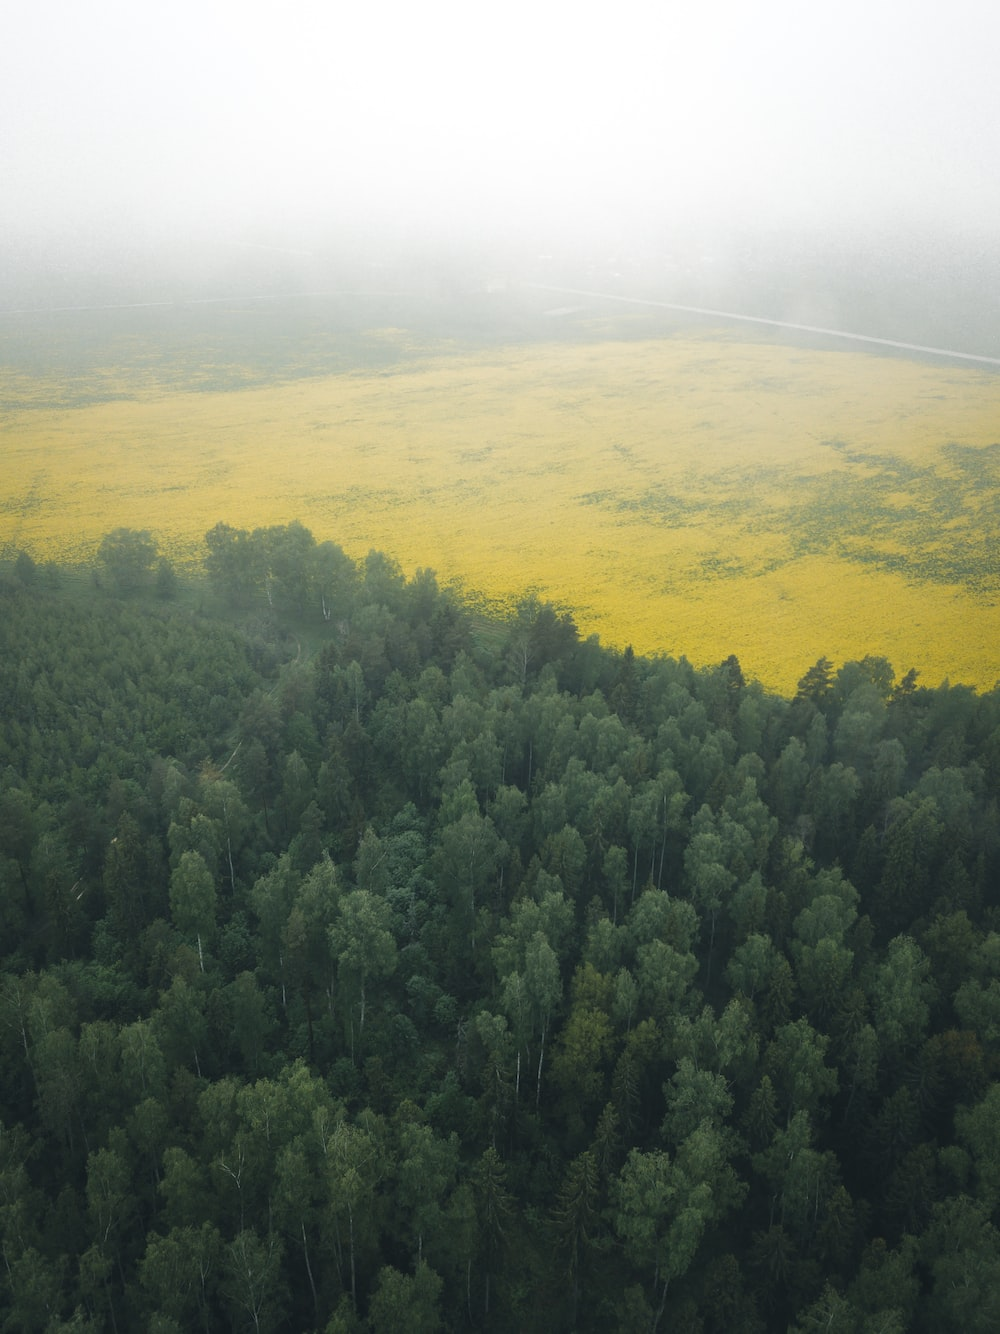 green trees on yellow field during daytime